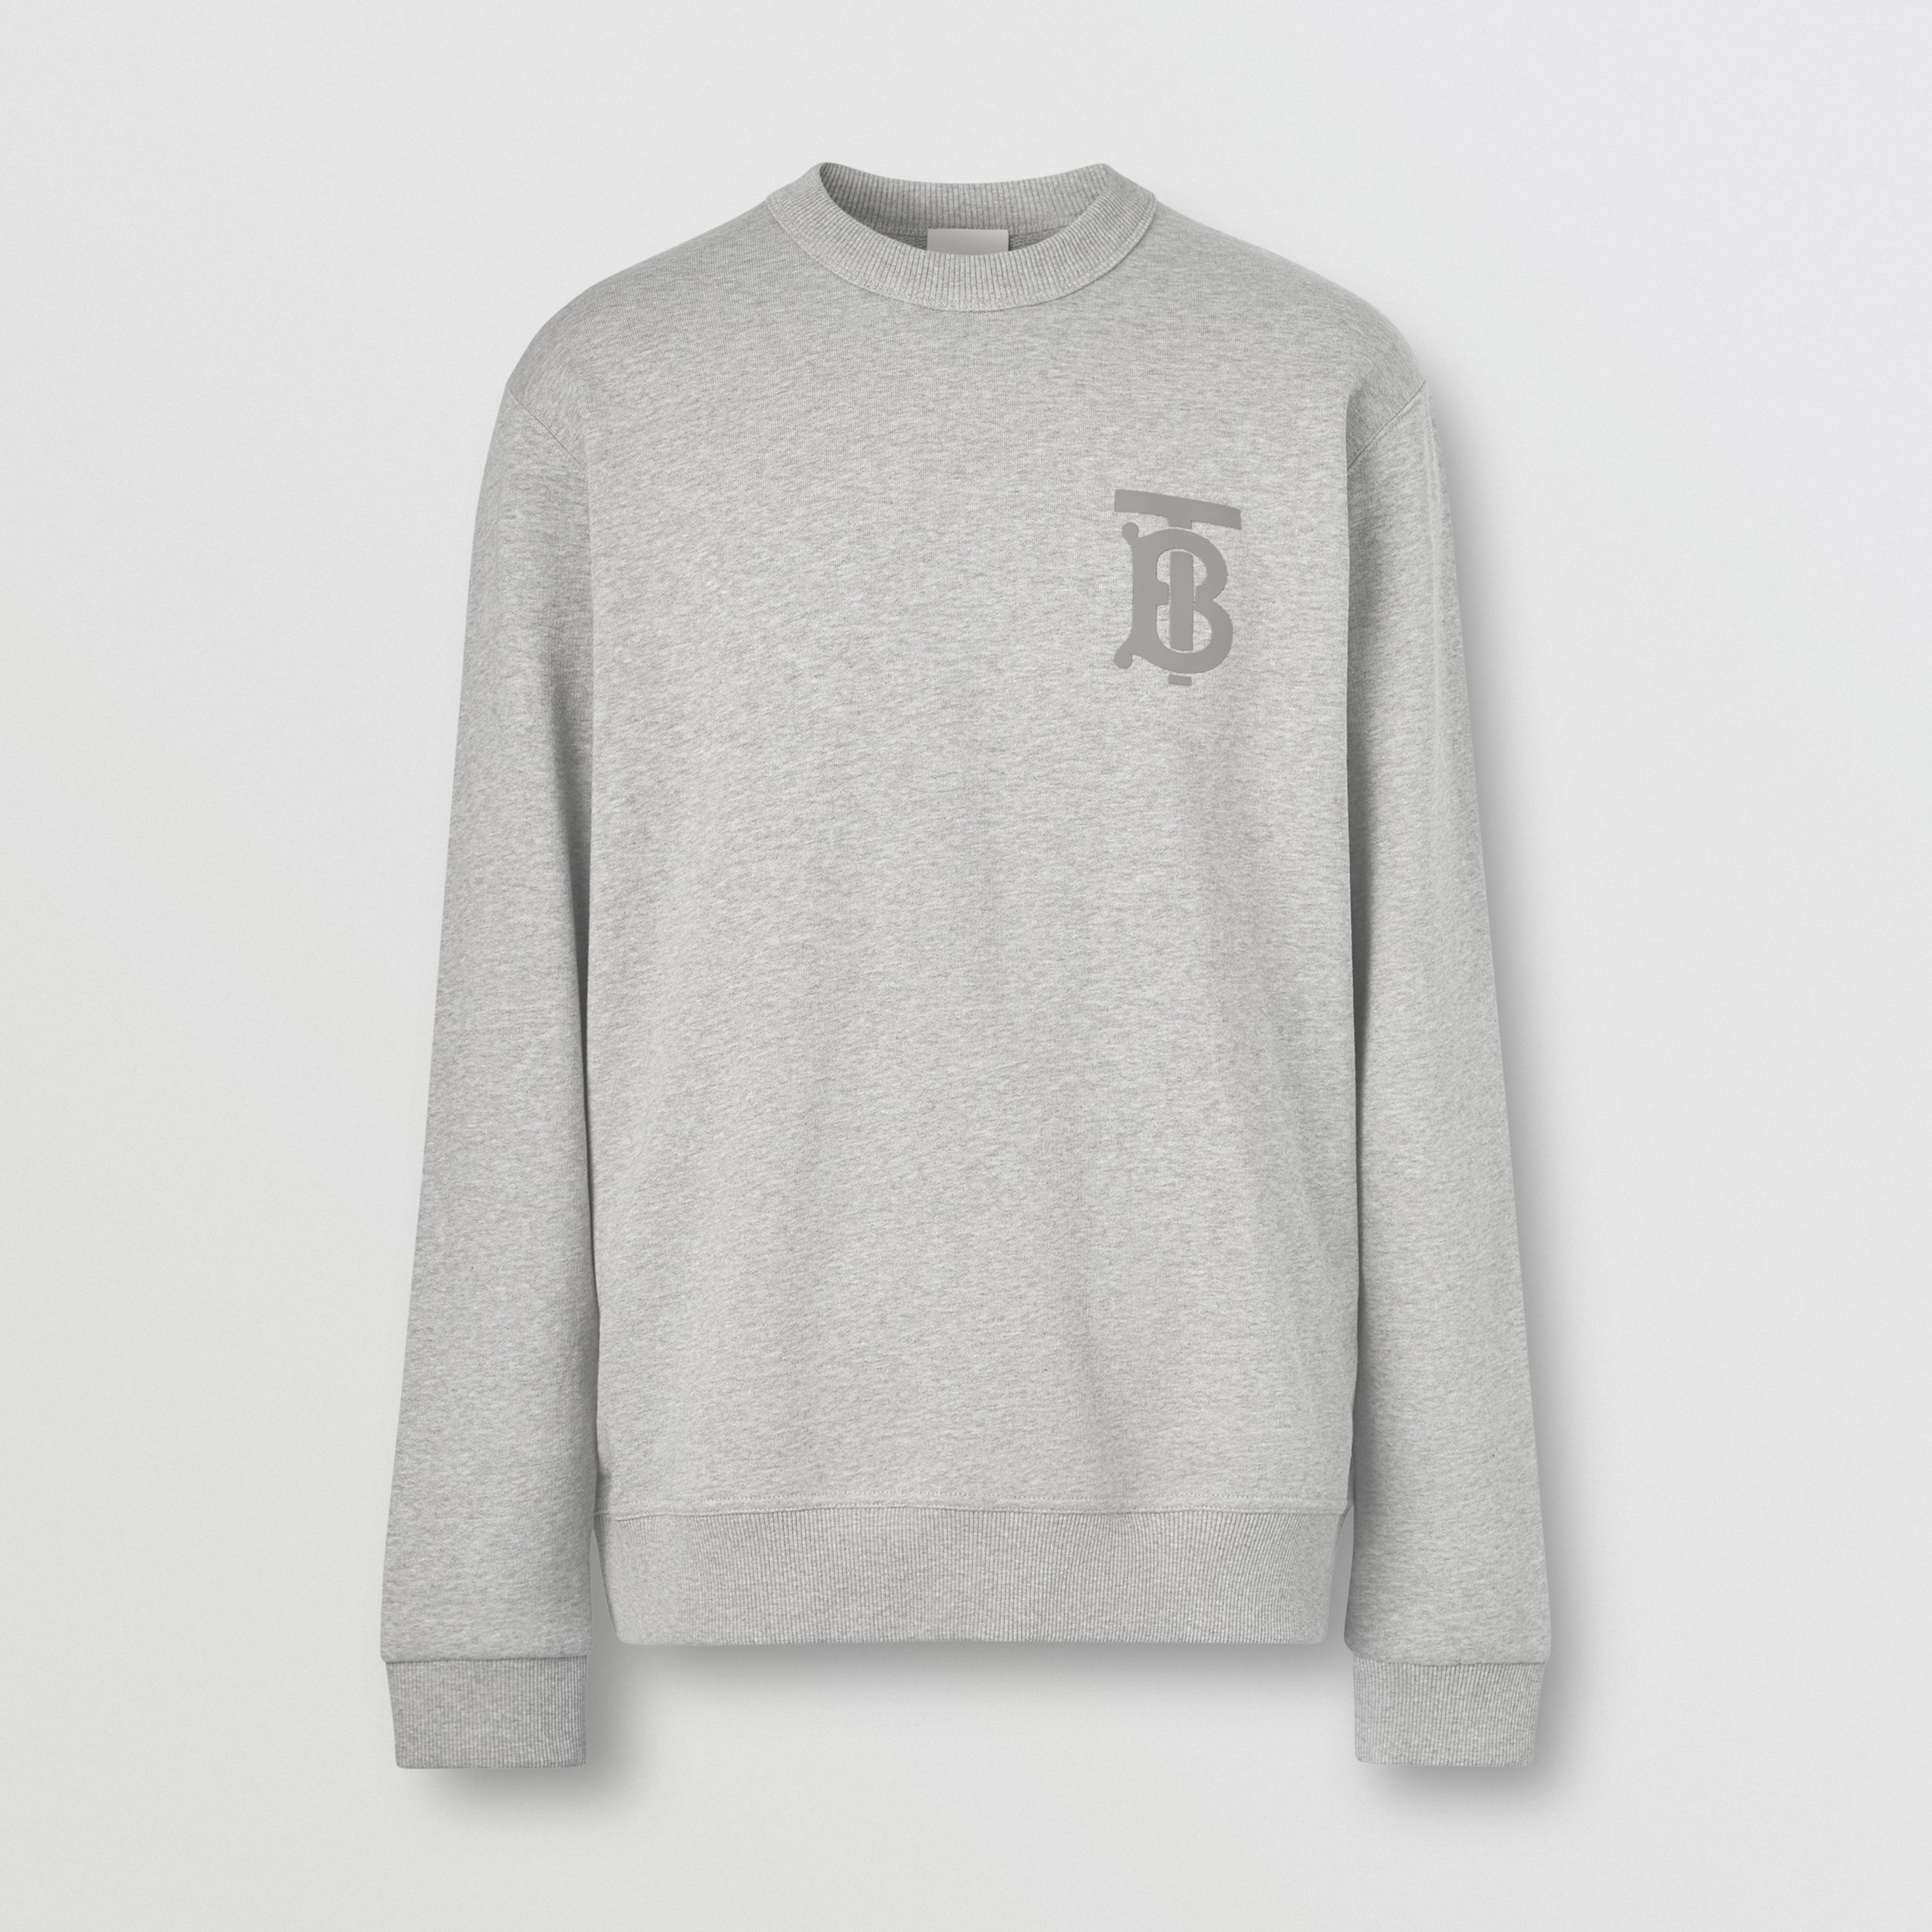 Monogram Motif Cotton Sweatshirt in Pale Grey Melange - Men | Burberry - 4